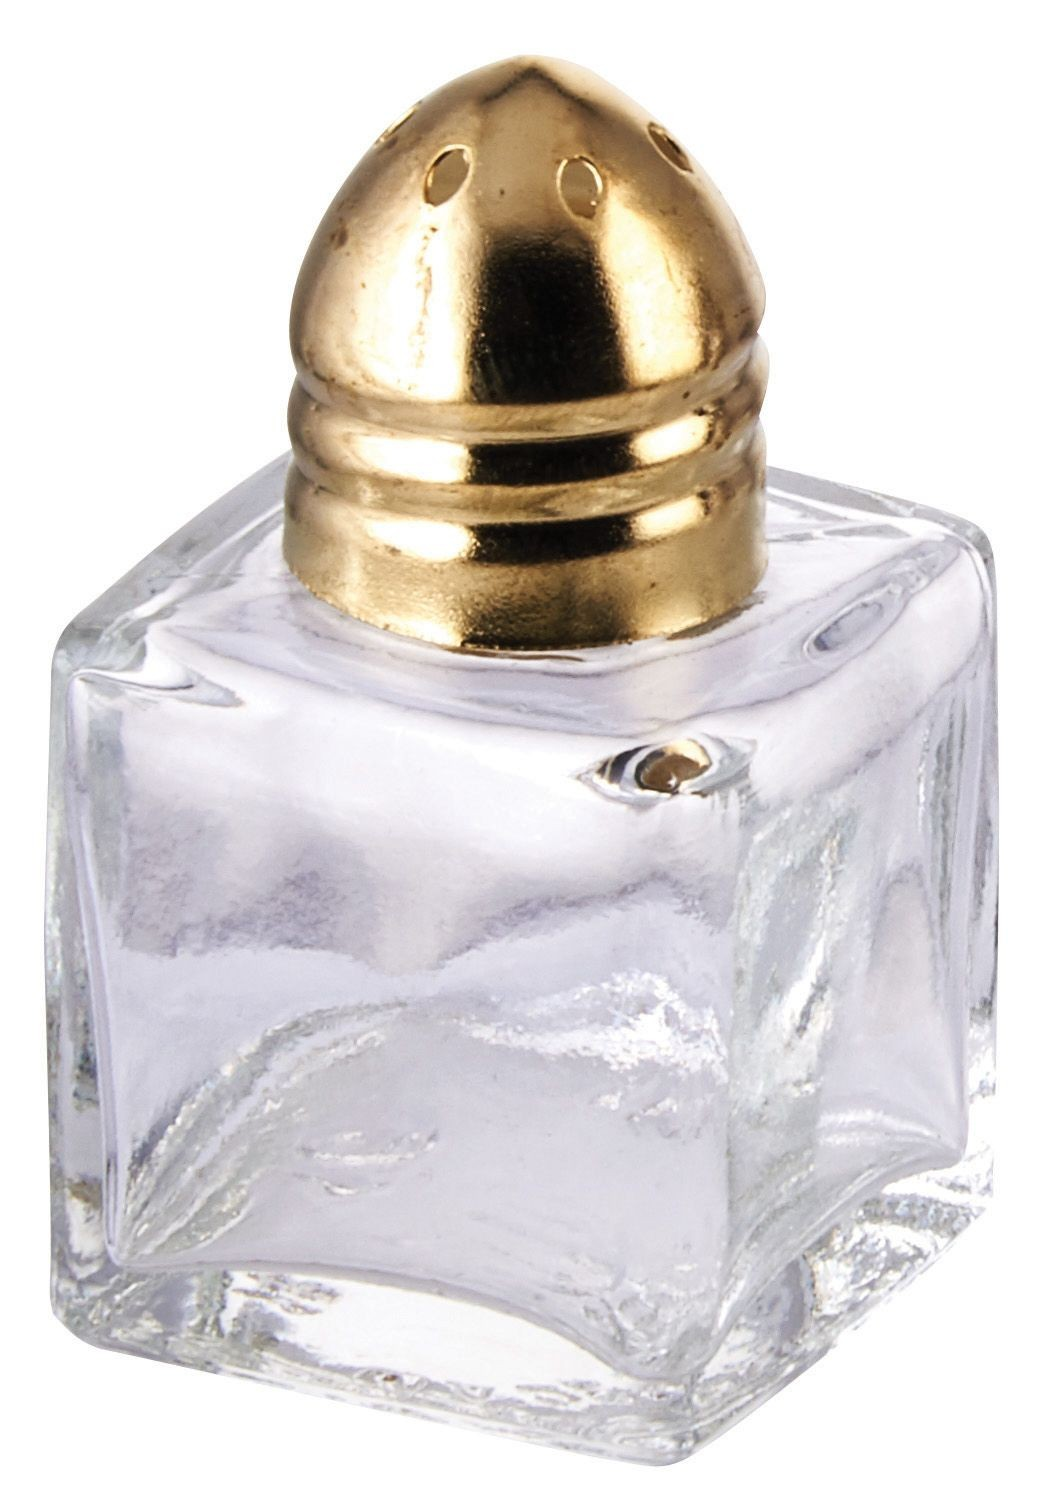 Winco G-101 Square 1/2 oz. Mini Glass Salt/Pepper Shaker with Brass Top